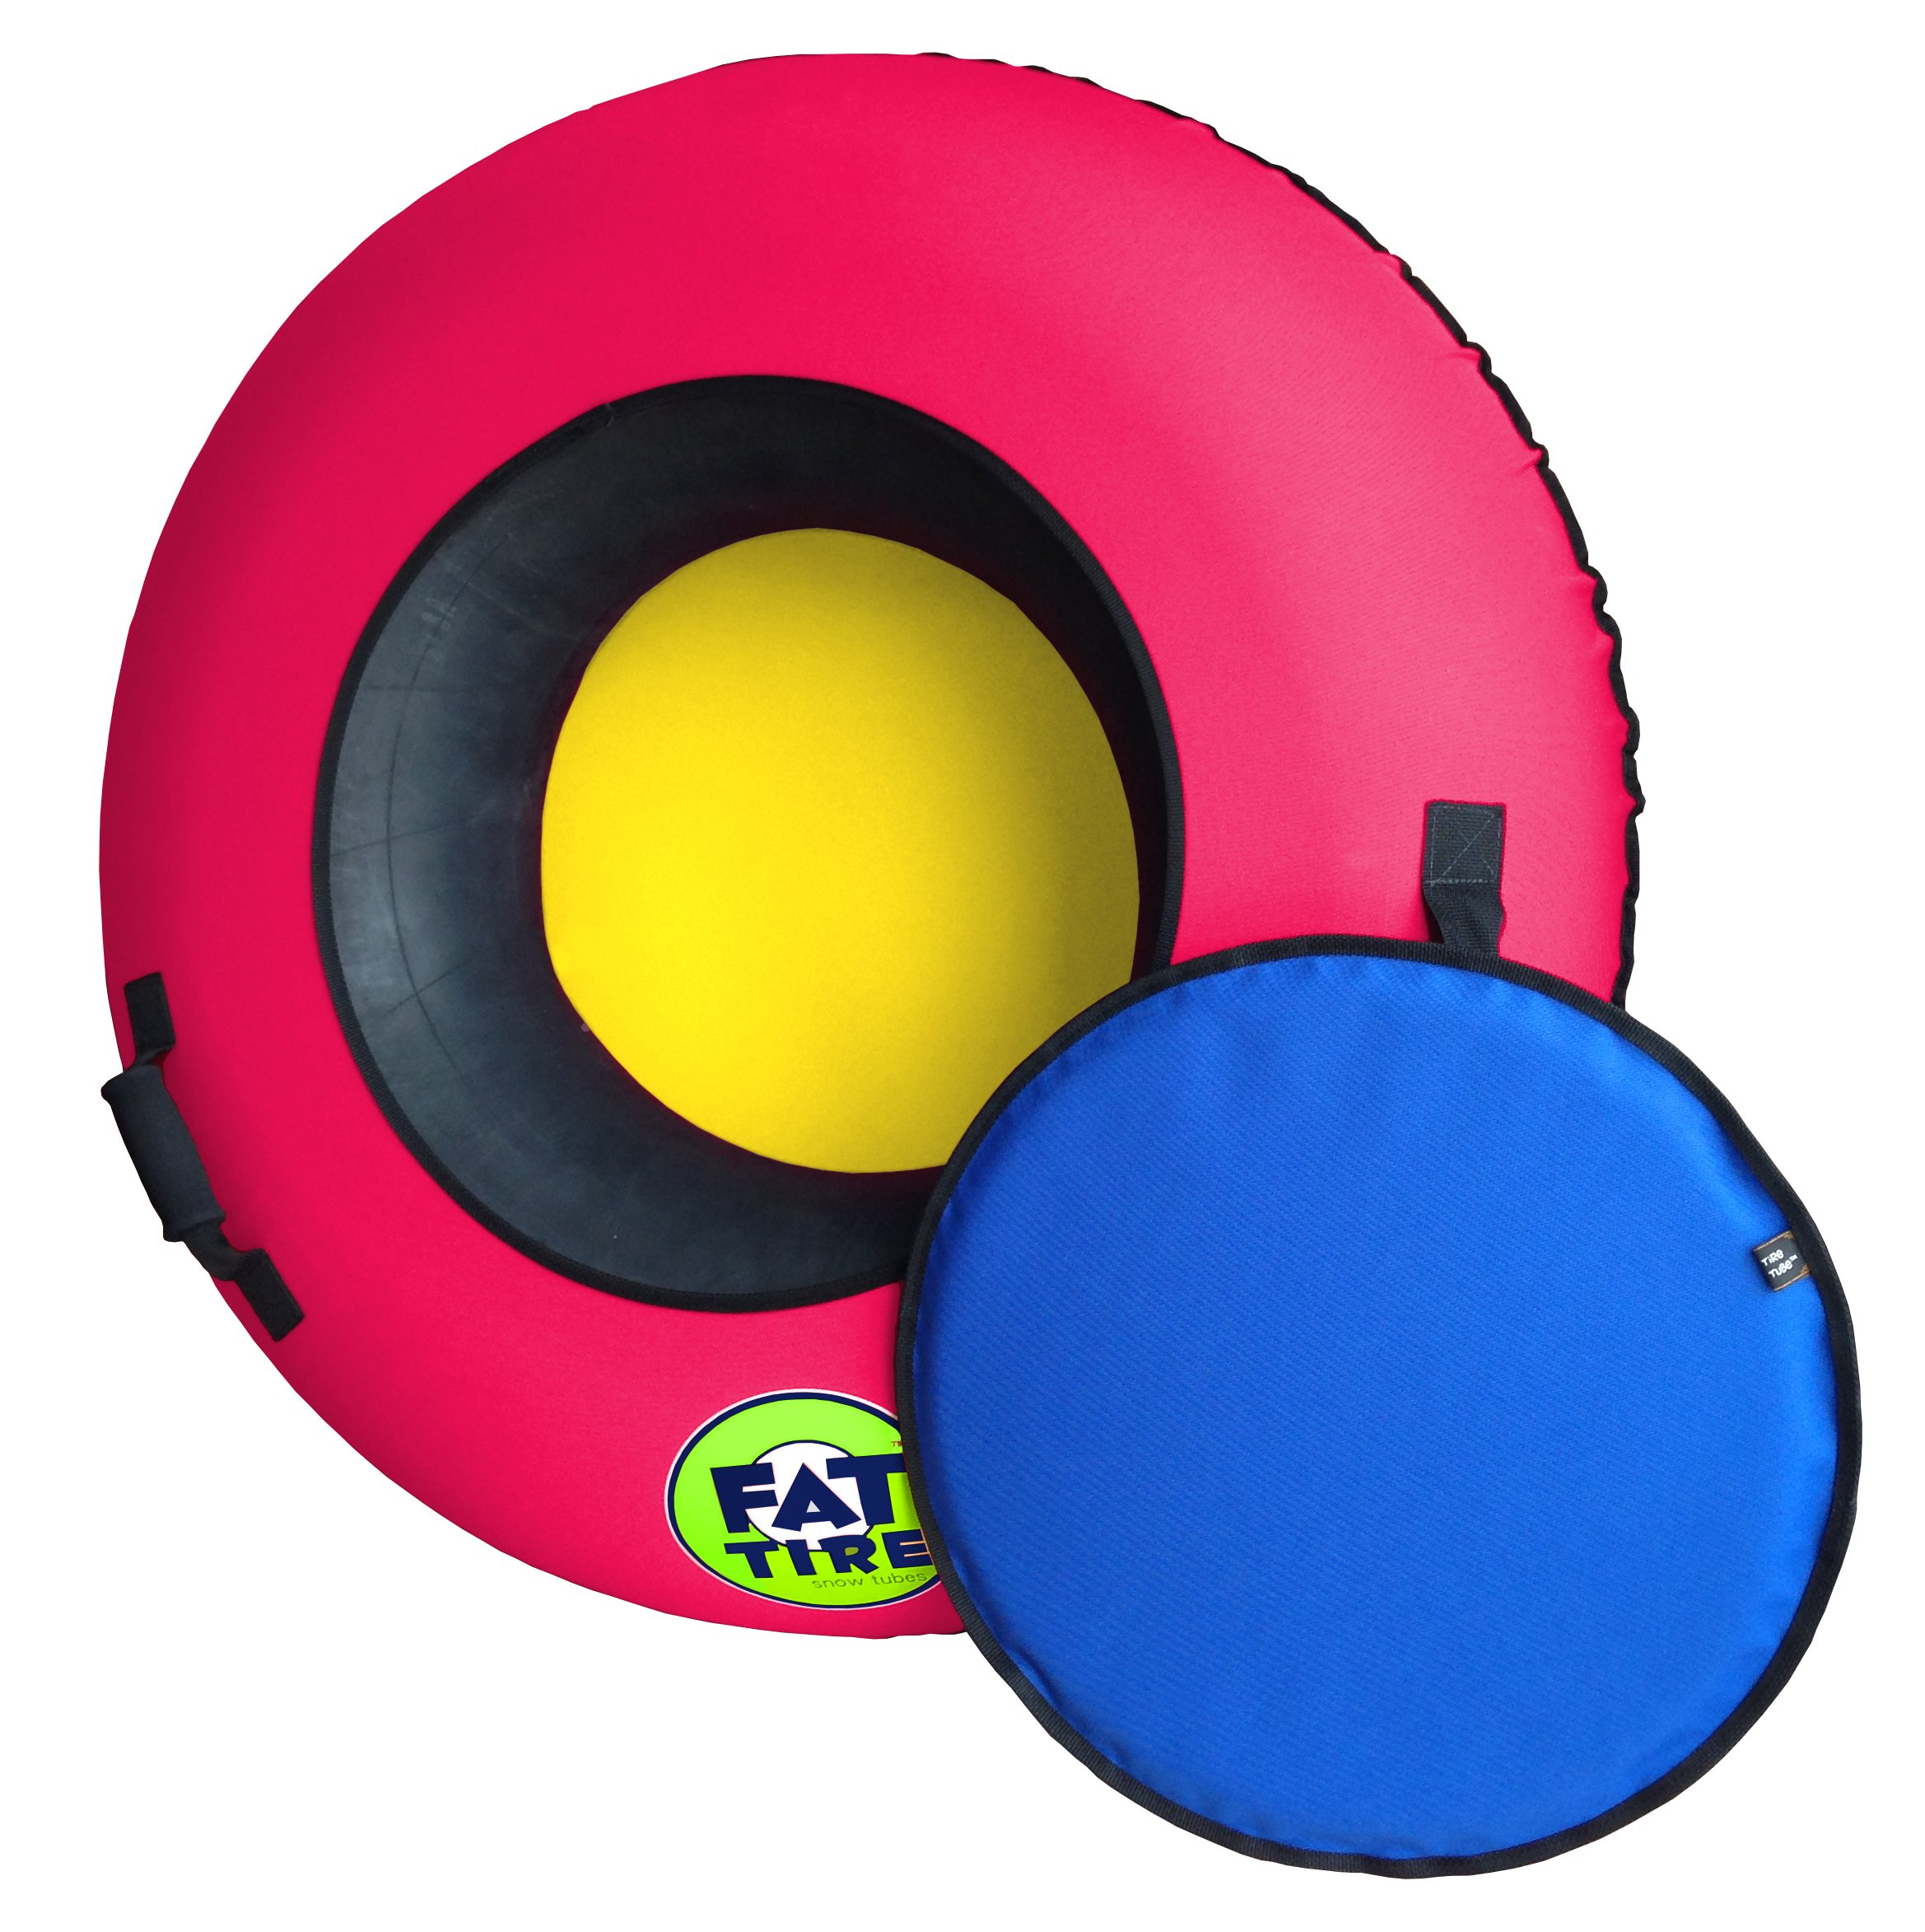 Fat Tire USA Snow Tube (Deluxe Edition), Neon Pink by Fat Tire USA